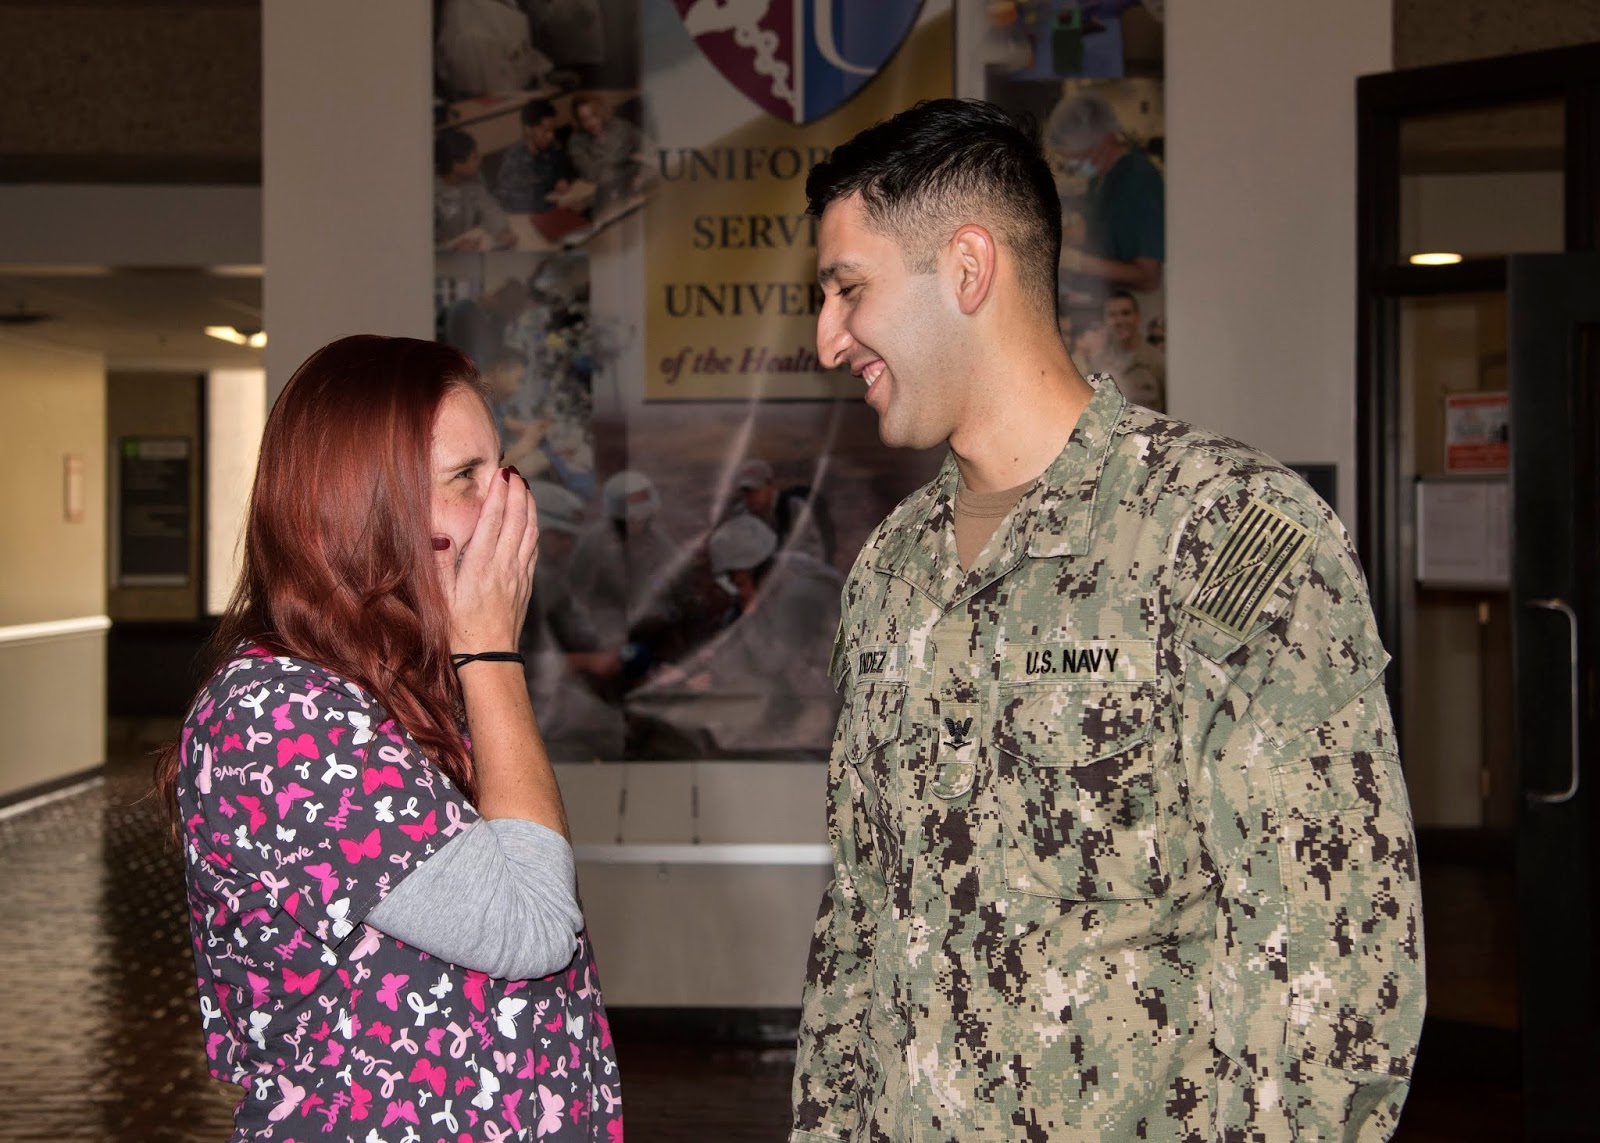 A female on the left, wearing medical scrubs covers her face while laughing at a man in a U.S. Navy uniform. They are standing in front of the entrance to the university's medical clinic.